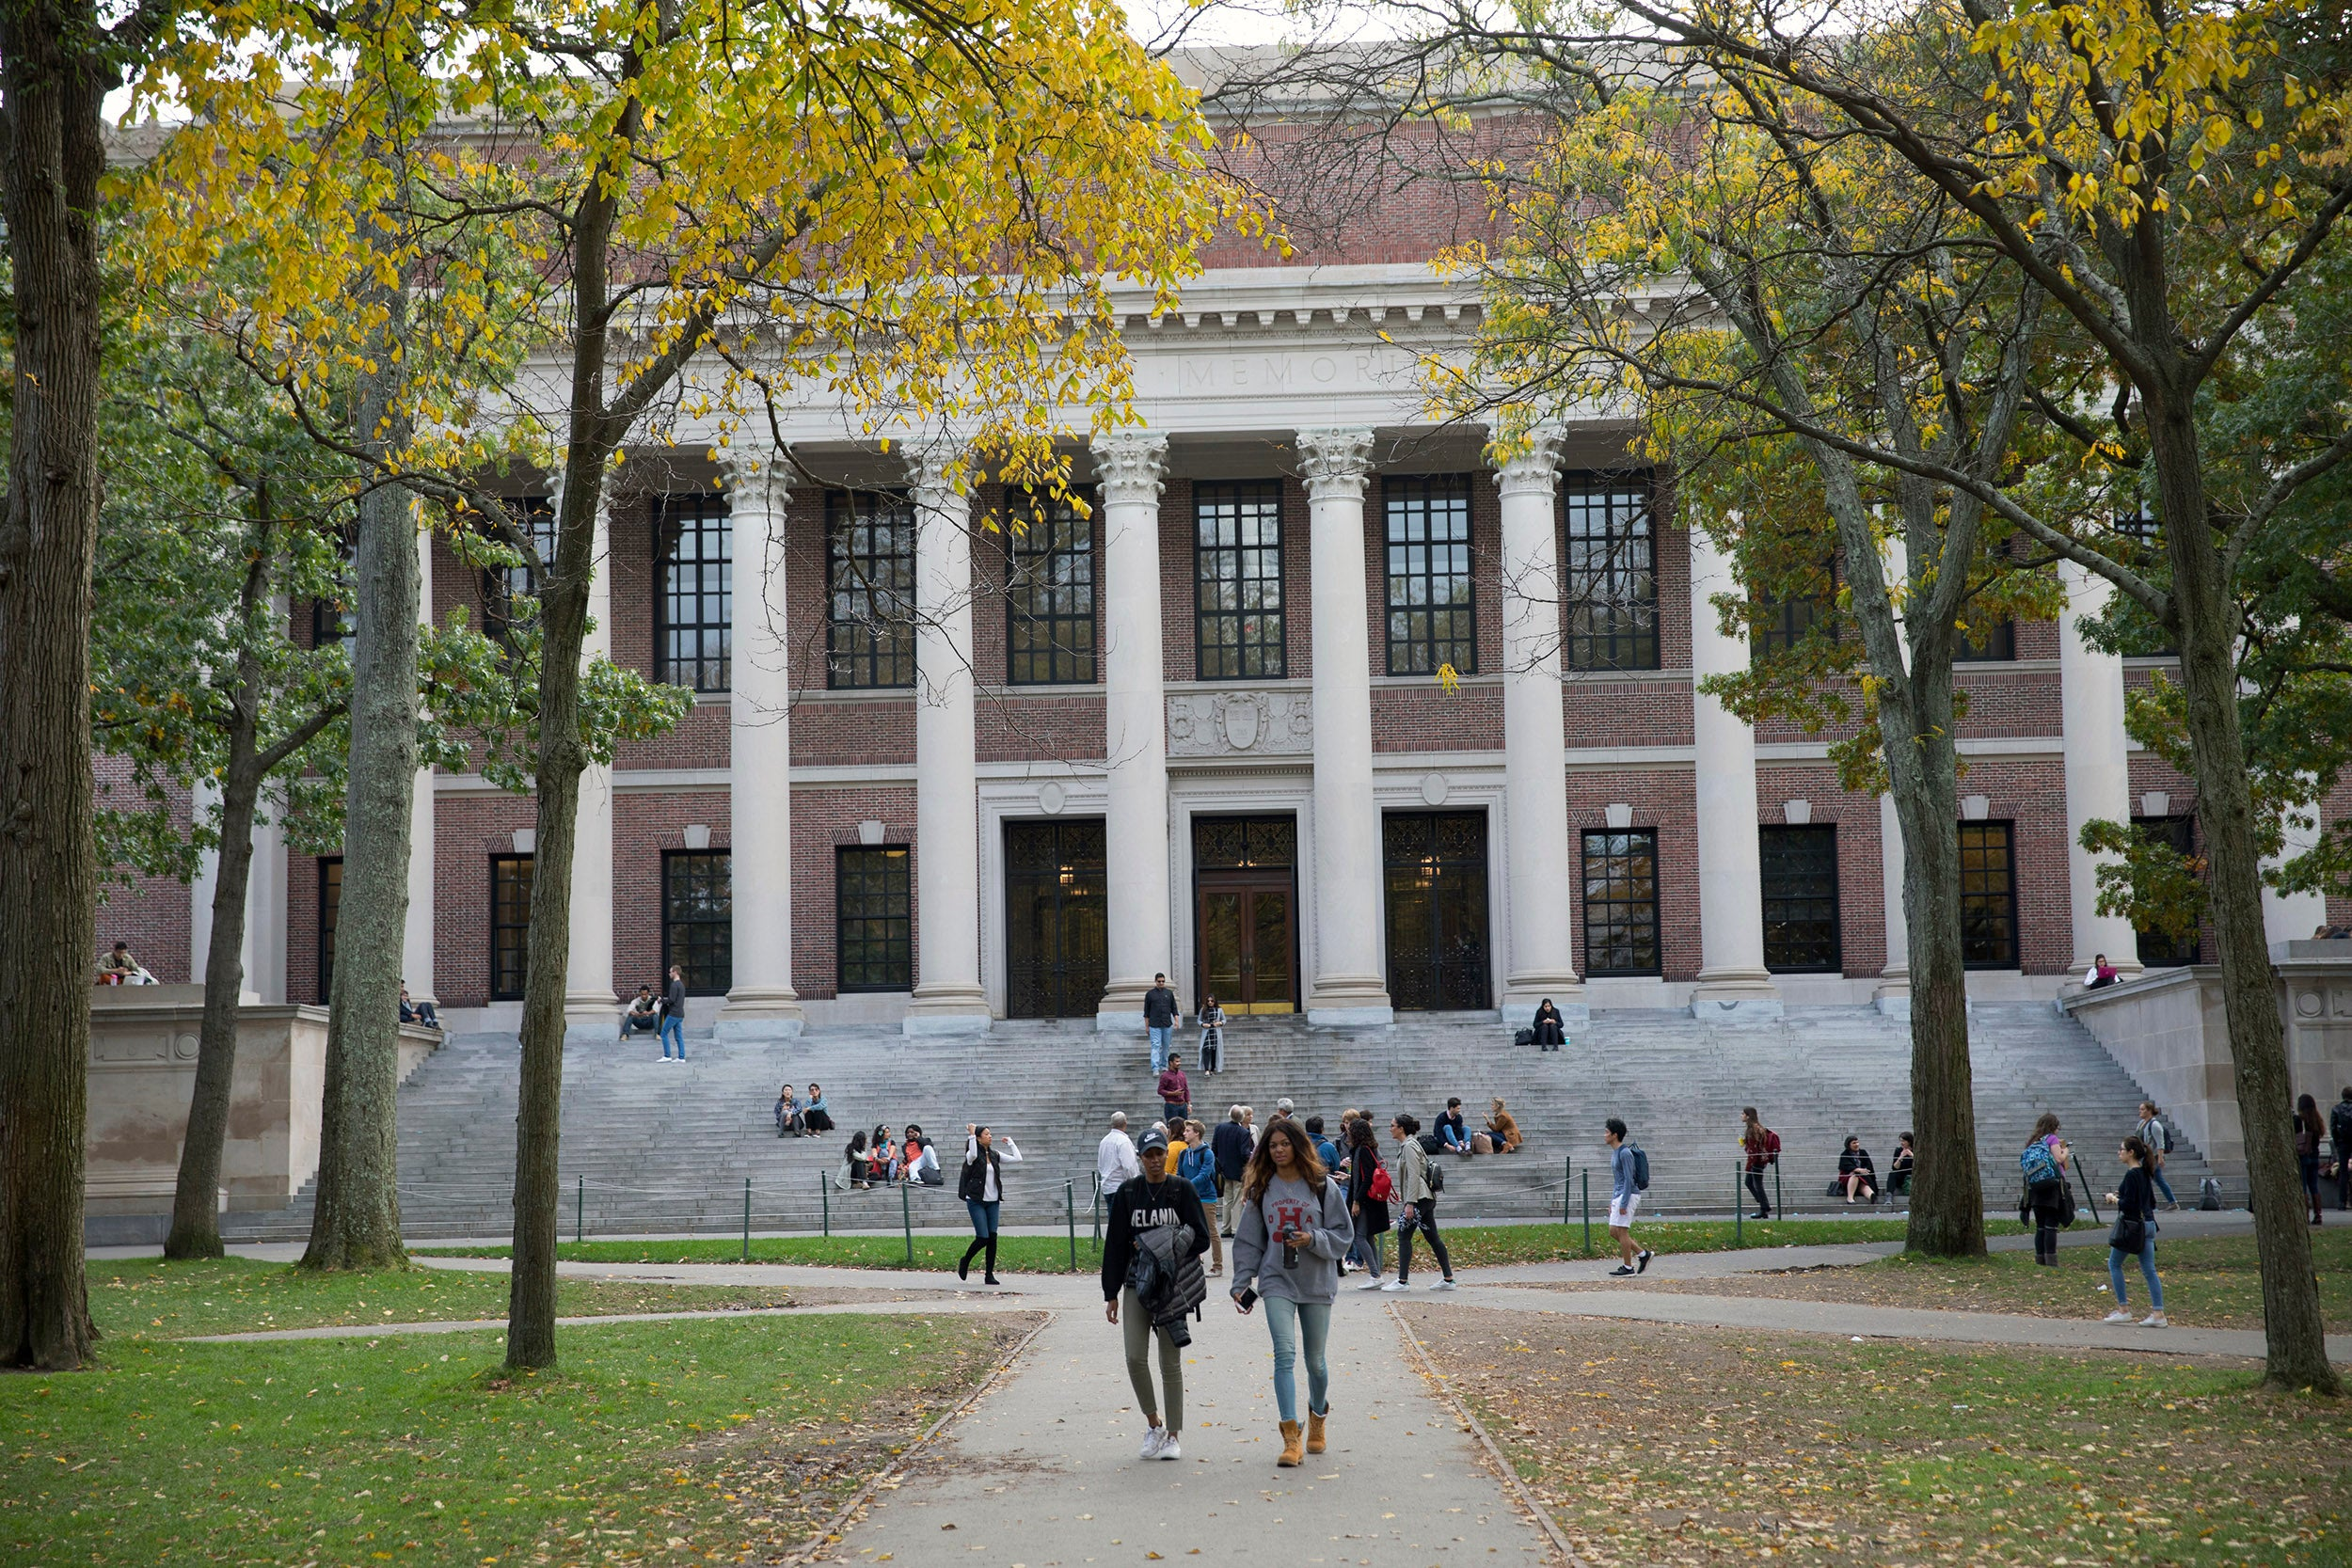 """Chosen from a record applicant pool of 42,749, the Class of 2022 promises to be one of the best in Harvard's long history,"" said William R. Fitzsimmons, dean of admissions and financial aid."